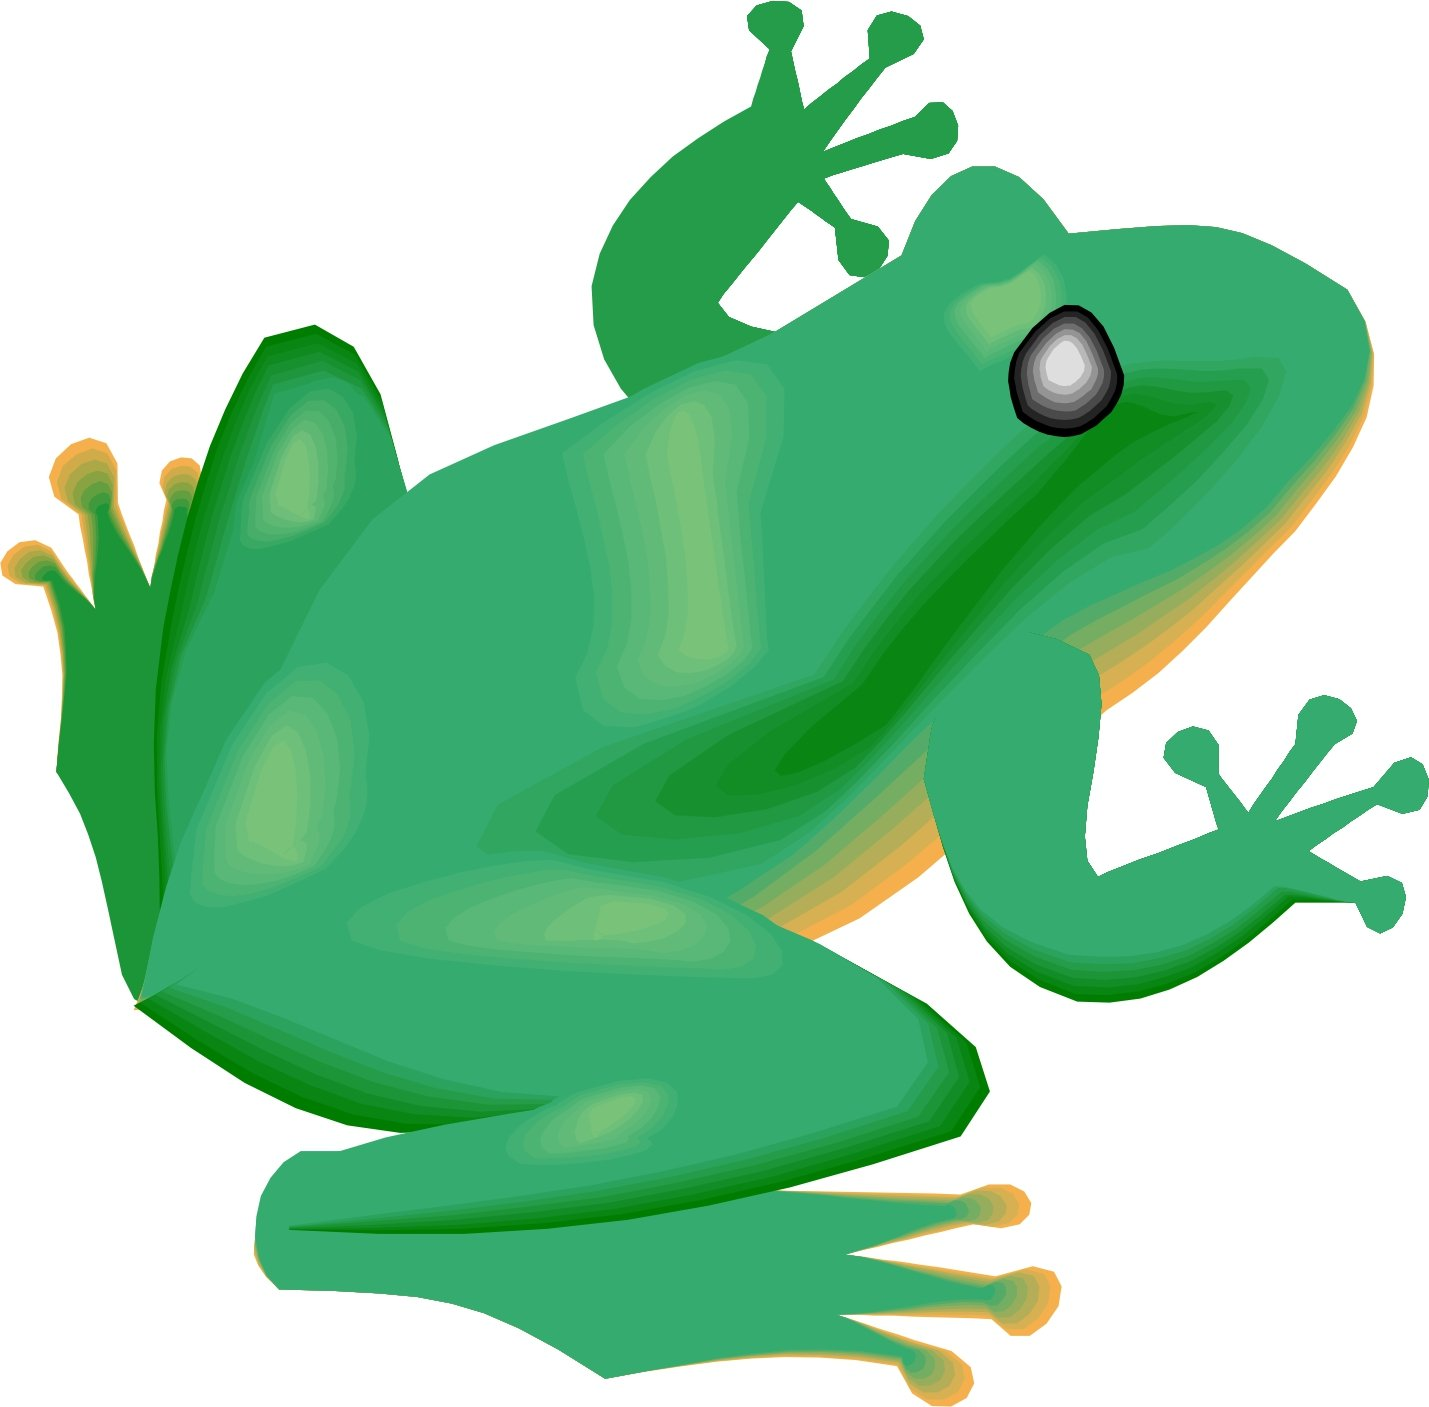 Cartoon frog - photo#47